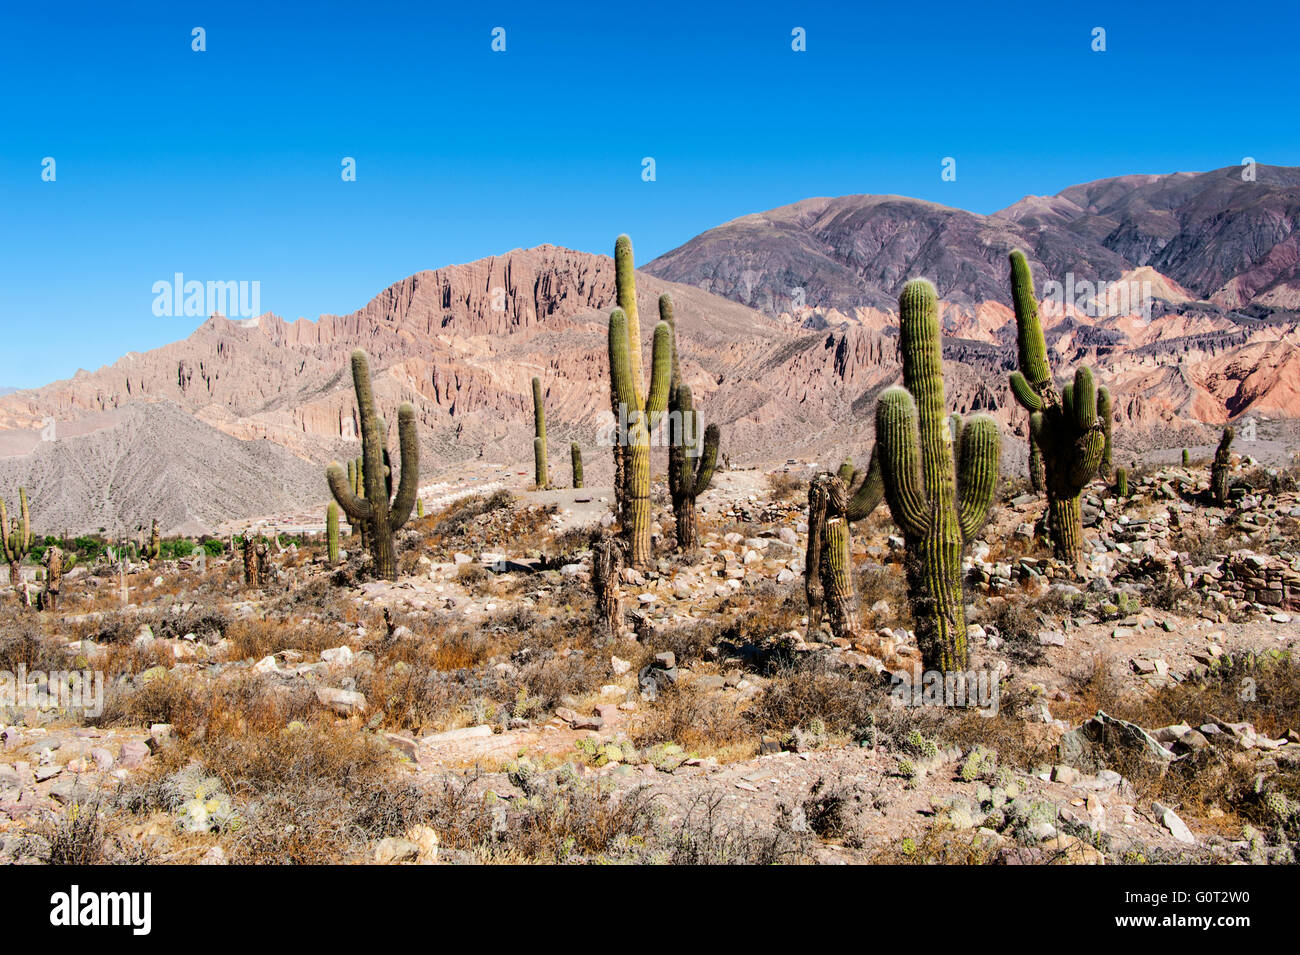 Colorful valley of Quebrada de Humahuaca, central Andes Altiplano, Argentina - Stock Image